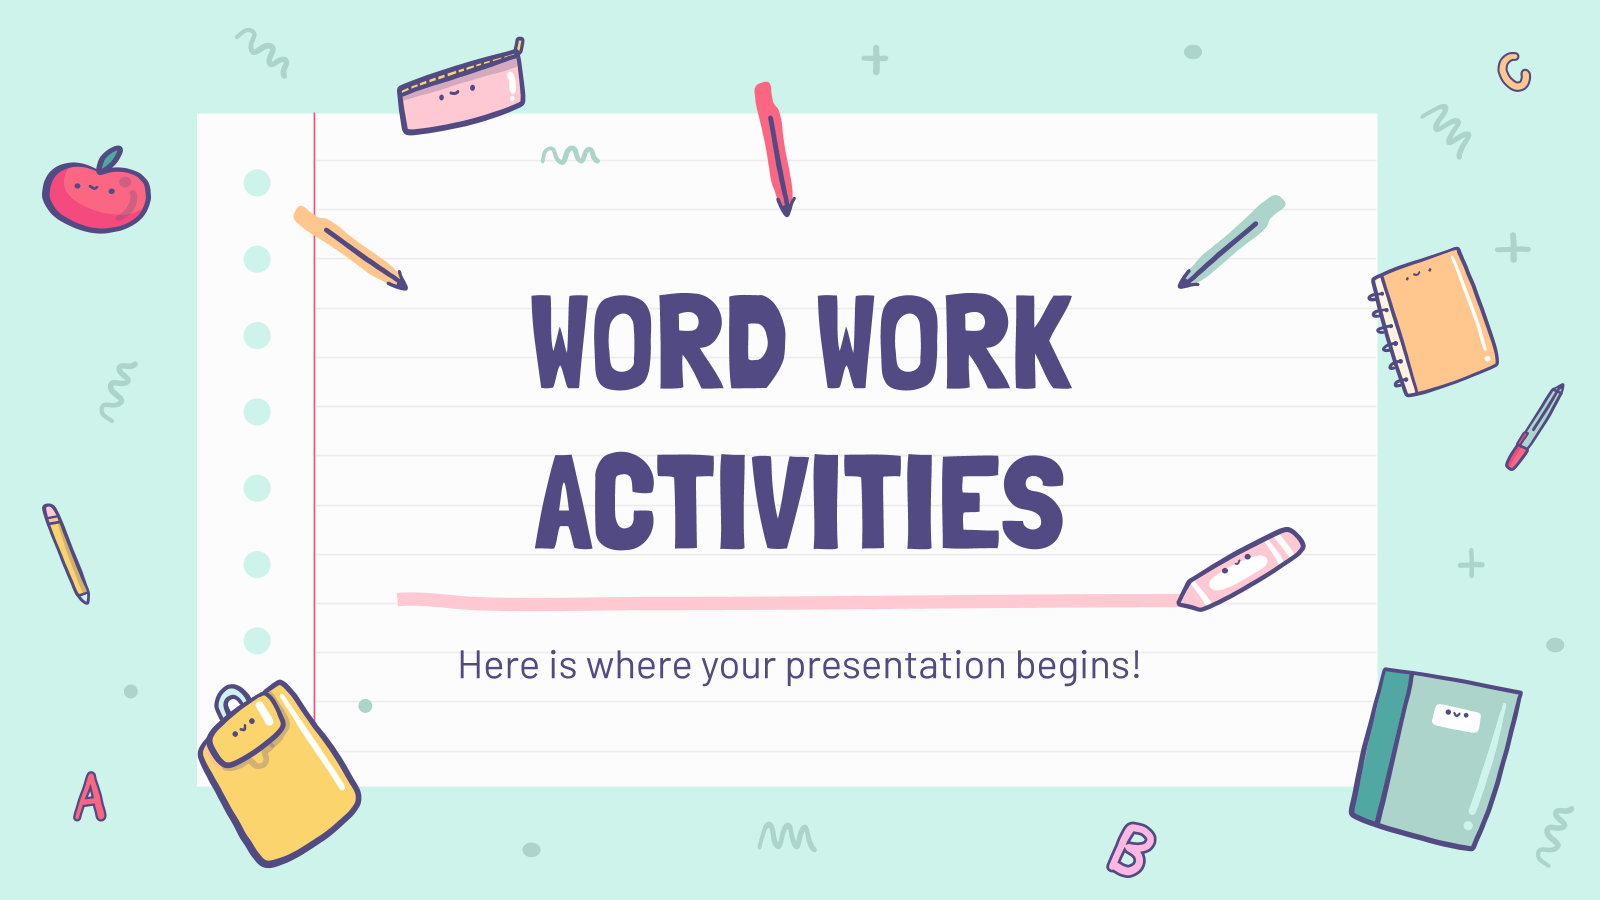 Free Editor S Choice Google Slides Themes And Ppt Templates Word Work Activities Word Work Work Activities